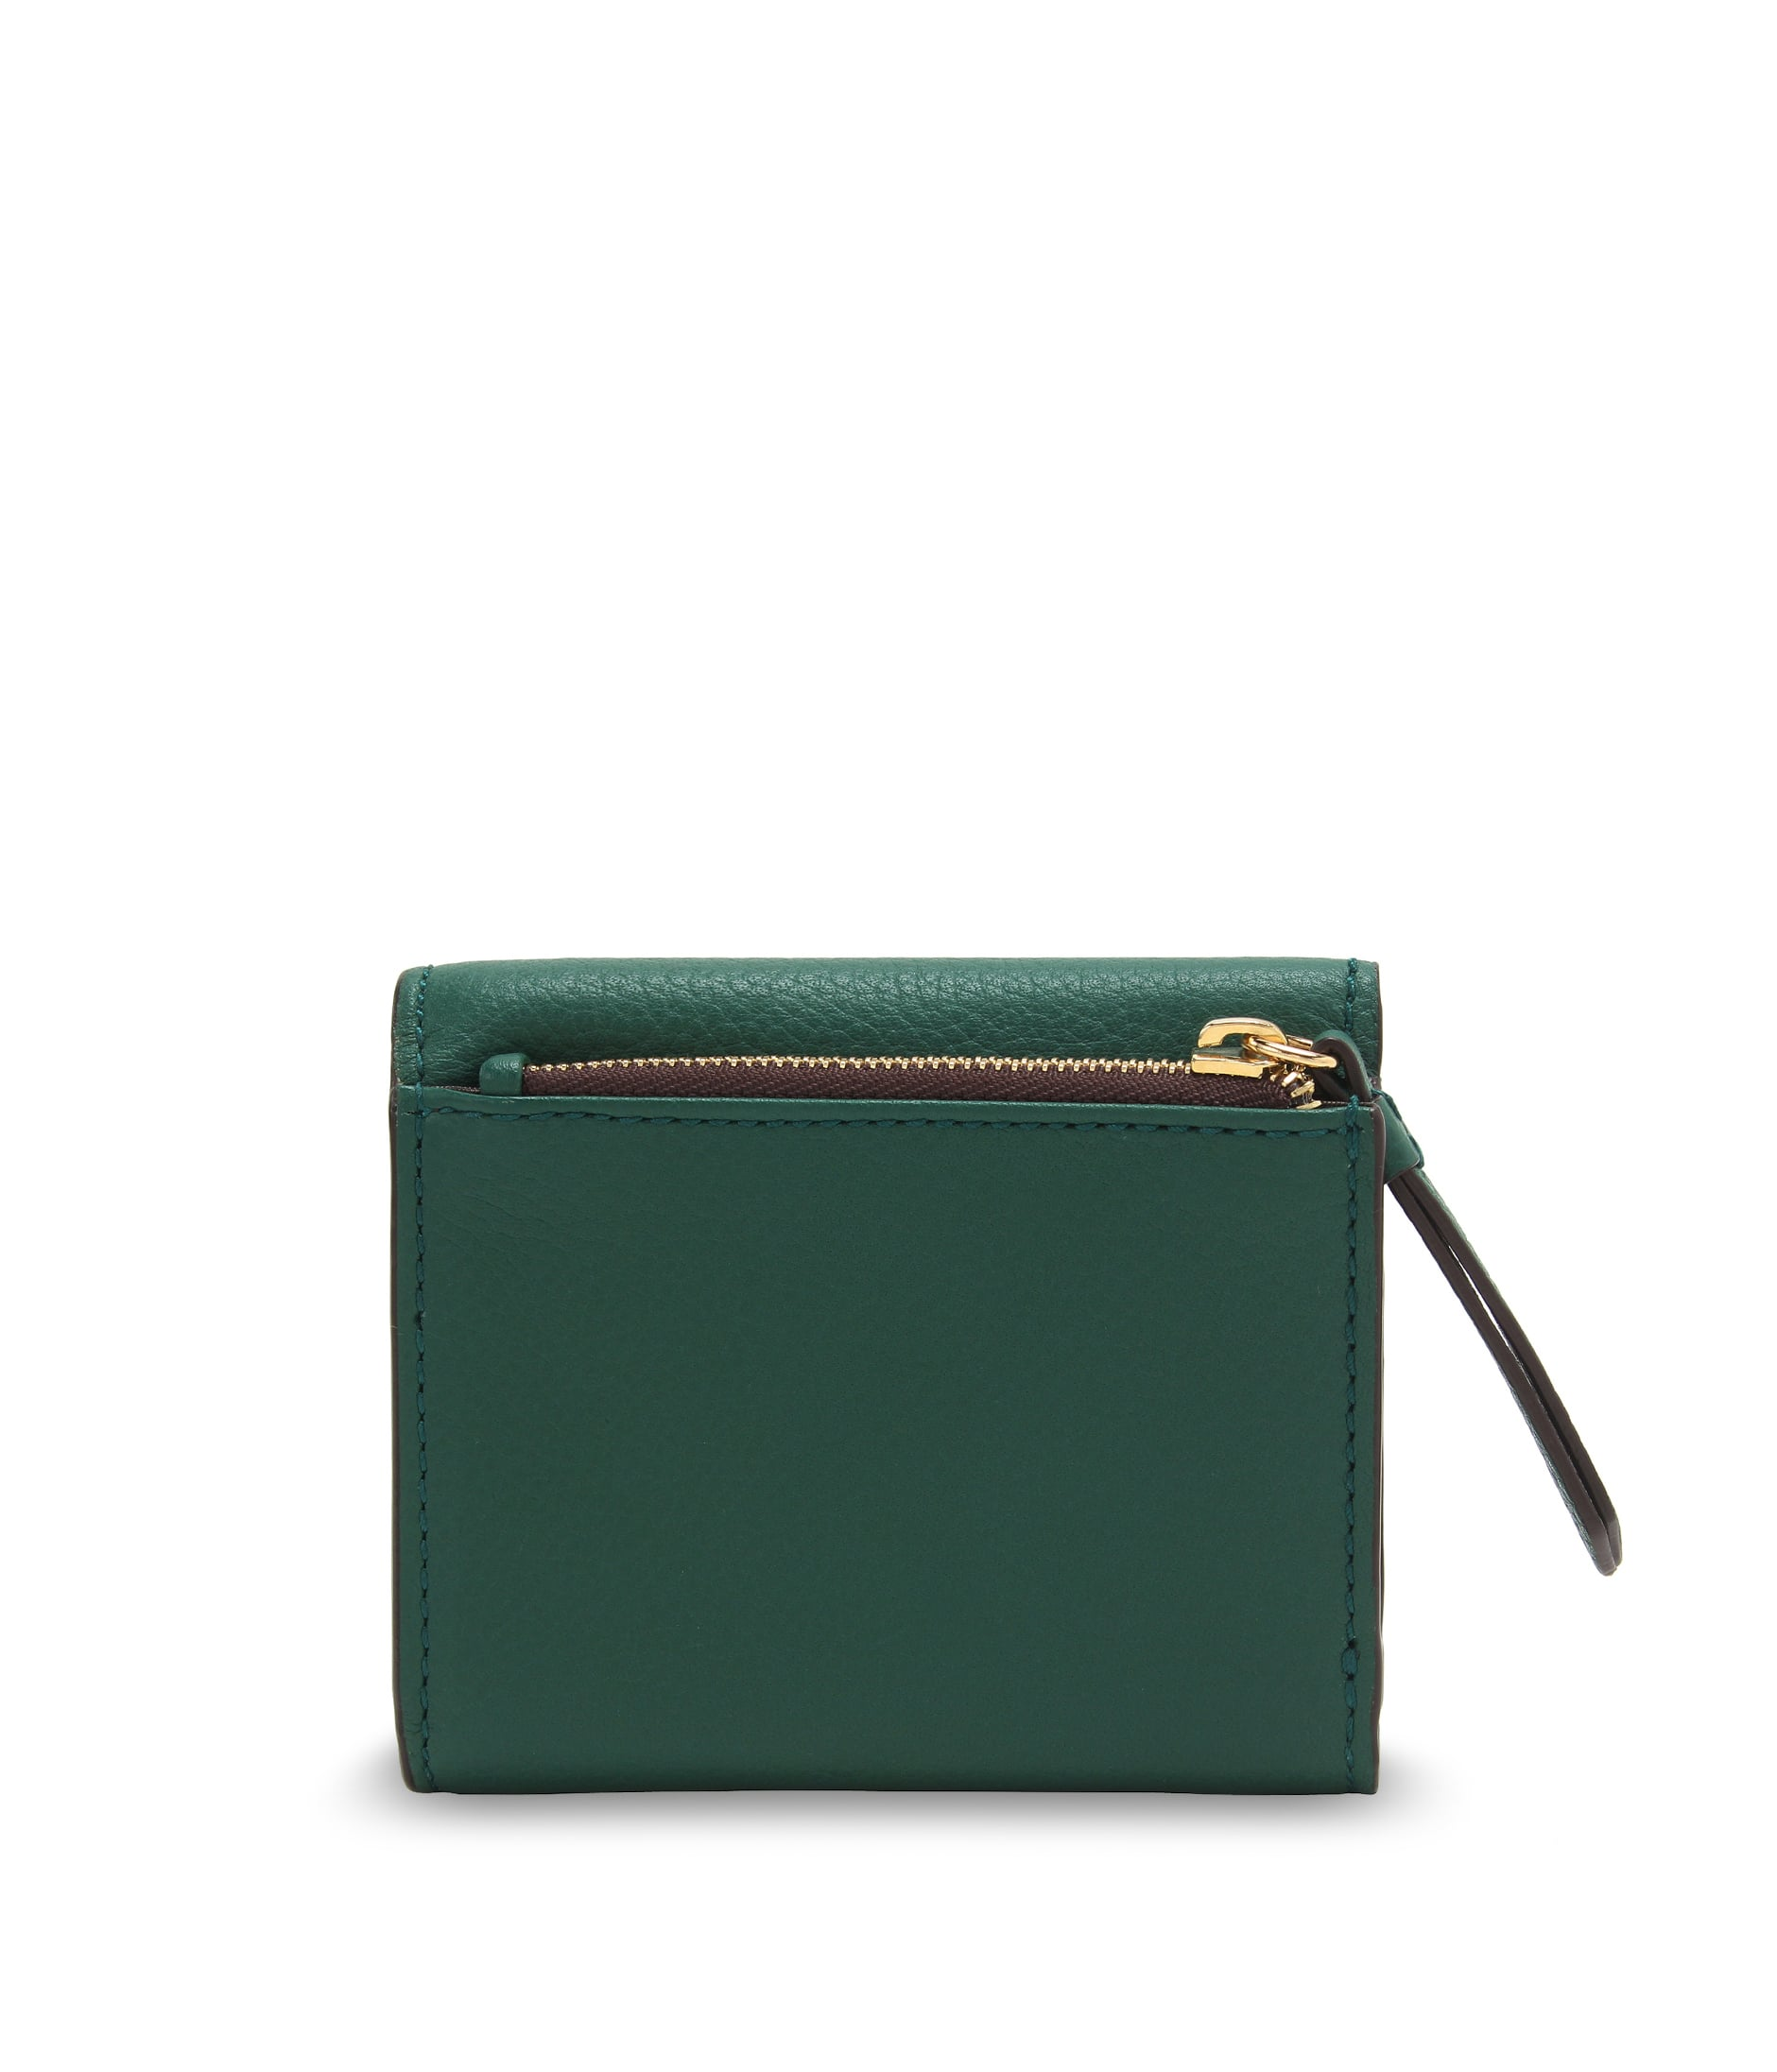 TWO FOLD WALLET 詳細画像 AVOCADO GREEN 2